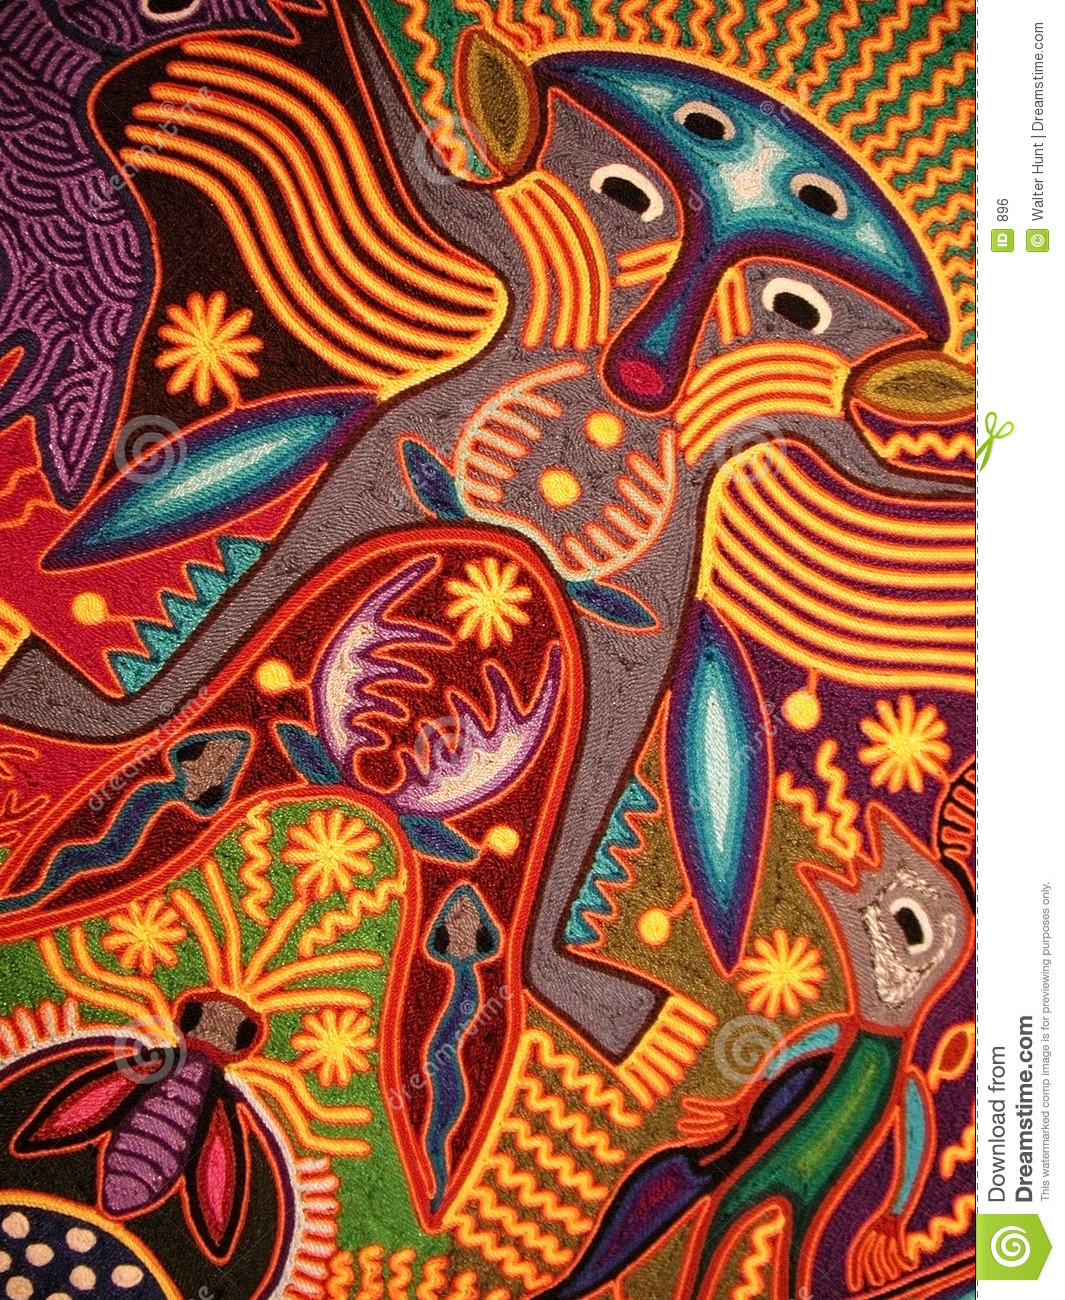 Arte Huichol Video Huichol Stock Images Download 93 Royalty Free Photos